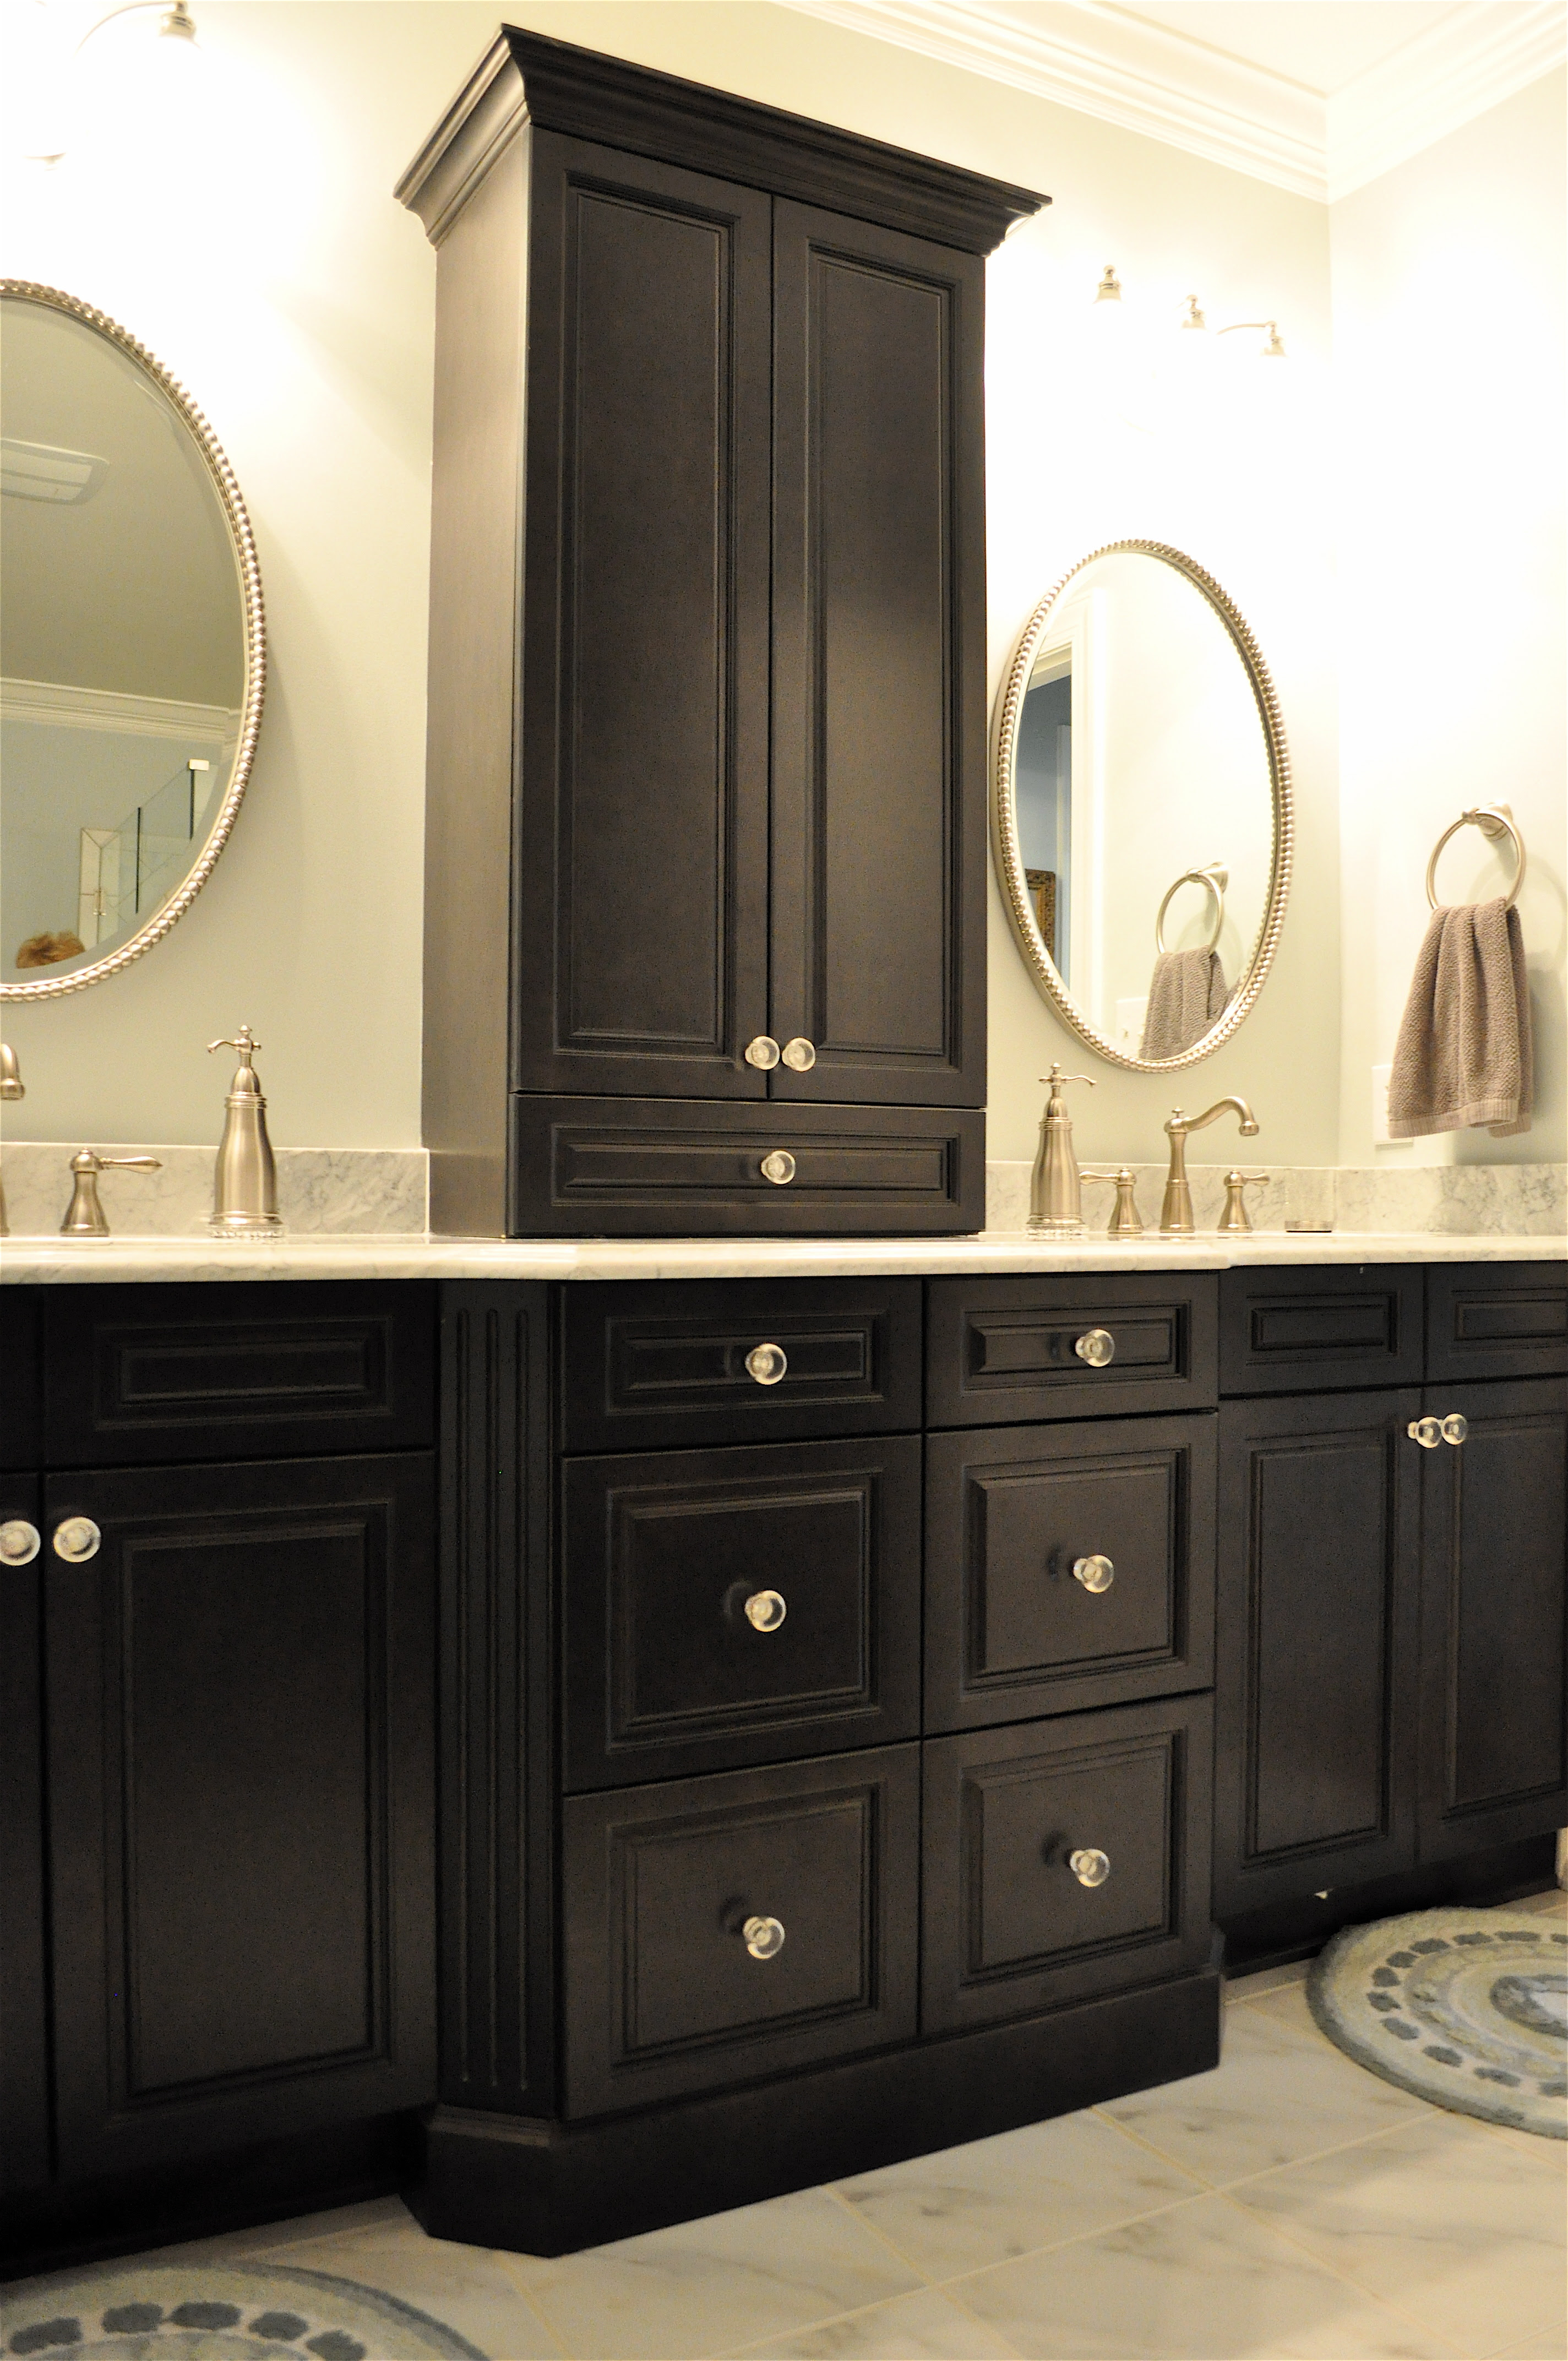 Bathroom Counter Storage Ideas Home Design